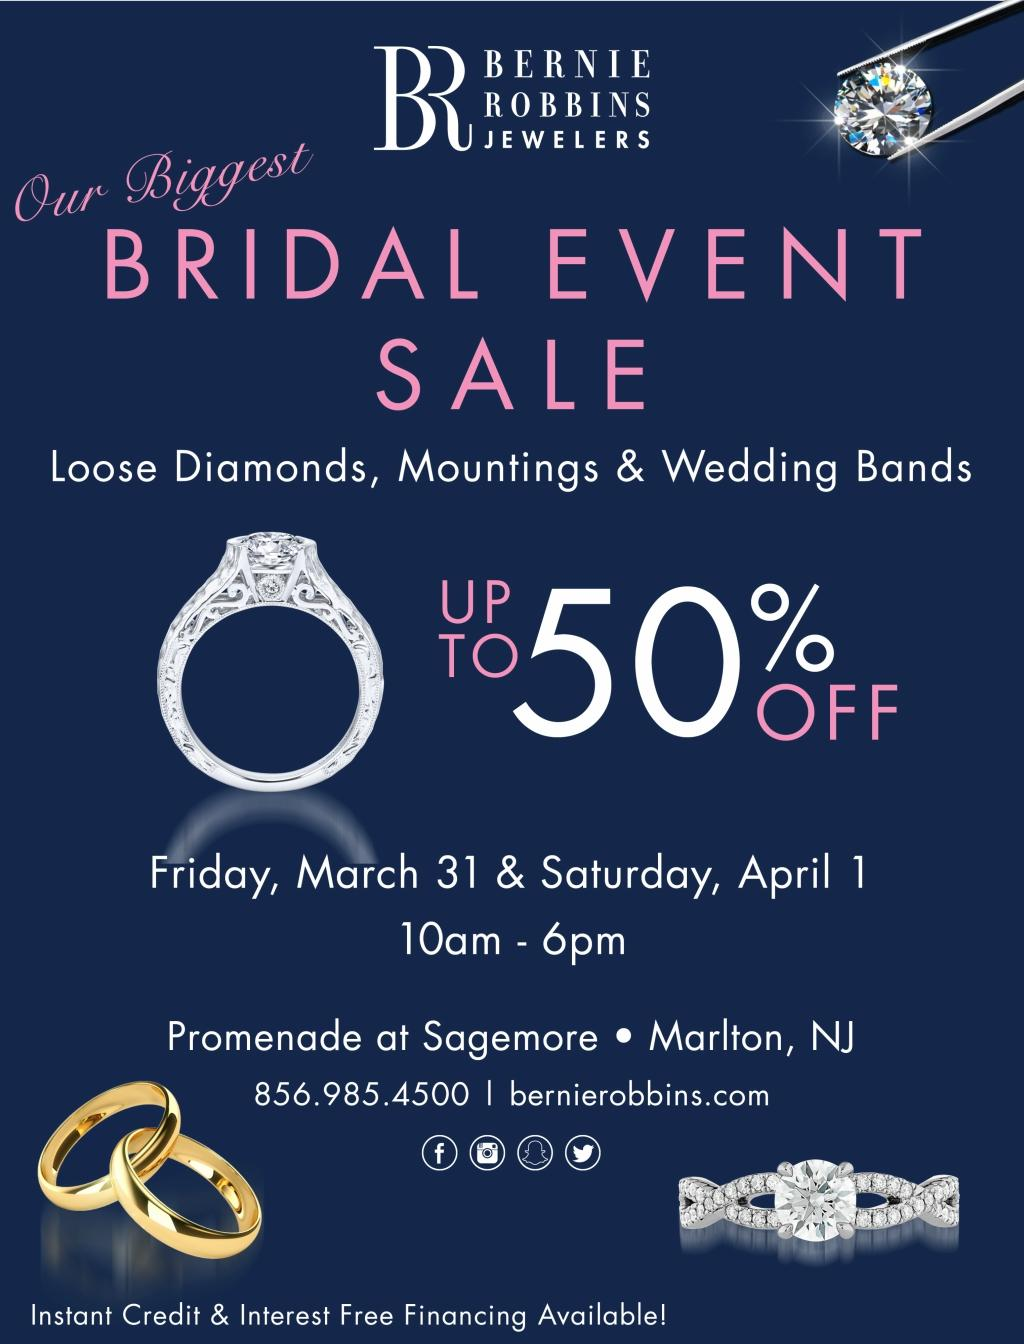 Bernie Robbins Jewelers Bridal Event Sale